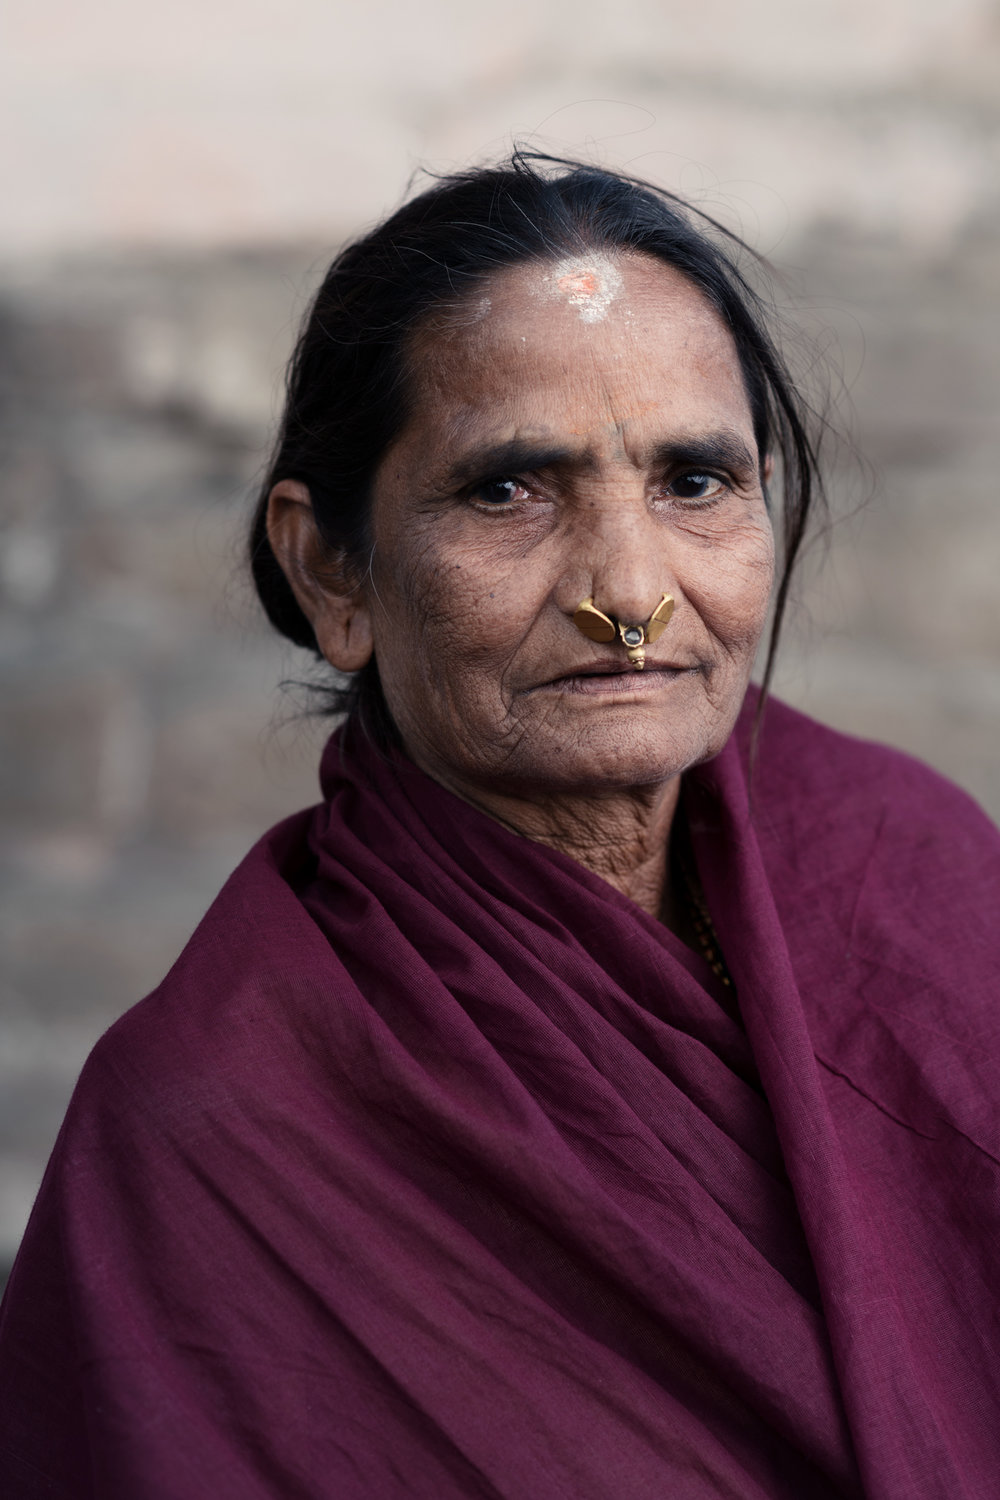 Varanasi_portrait_travel_photography_Manchester_Adventure_Photographer_Jan_Bella4.jpg